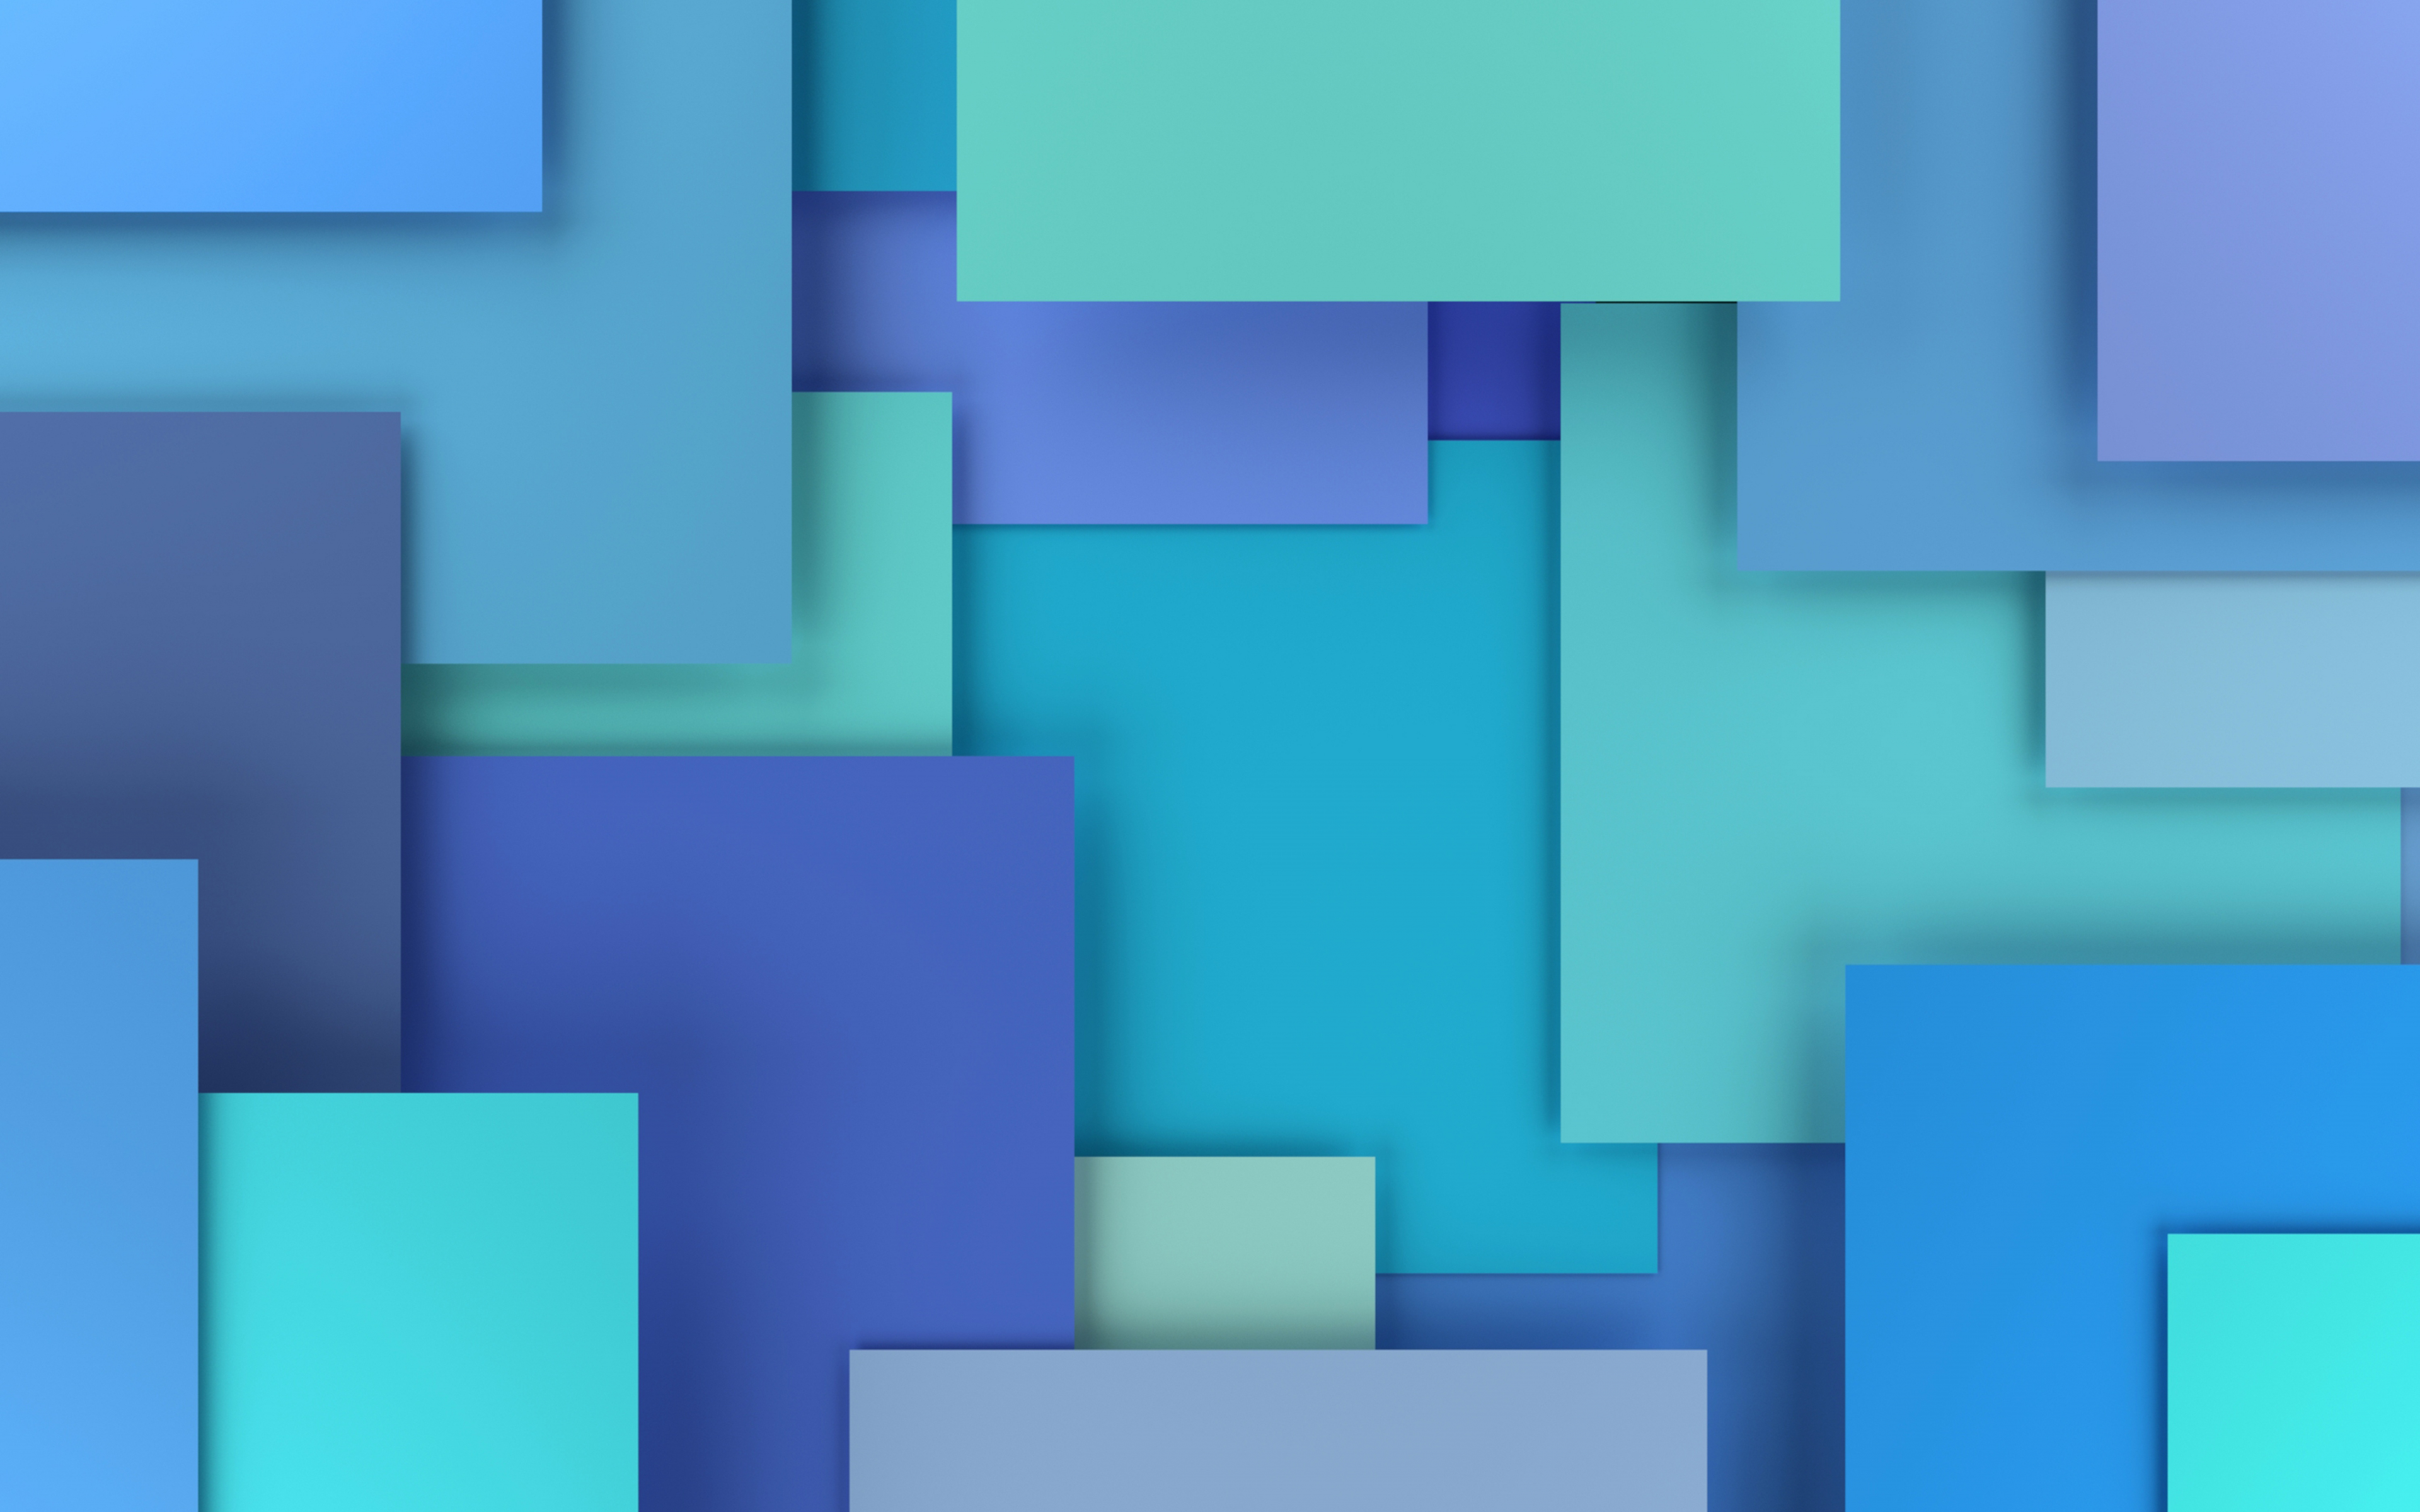 Download 3840x2400 Wallpaper Material Design, Abstract ...